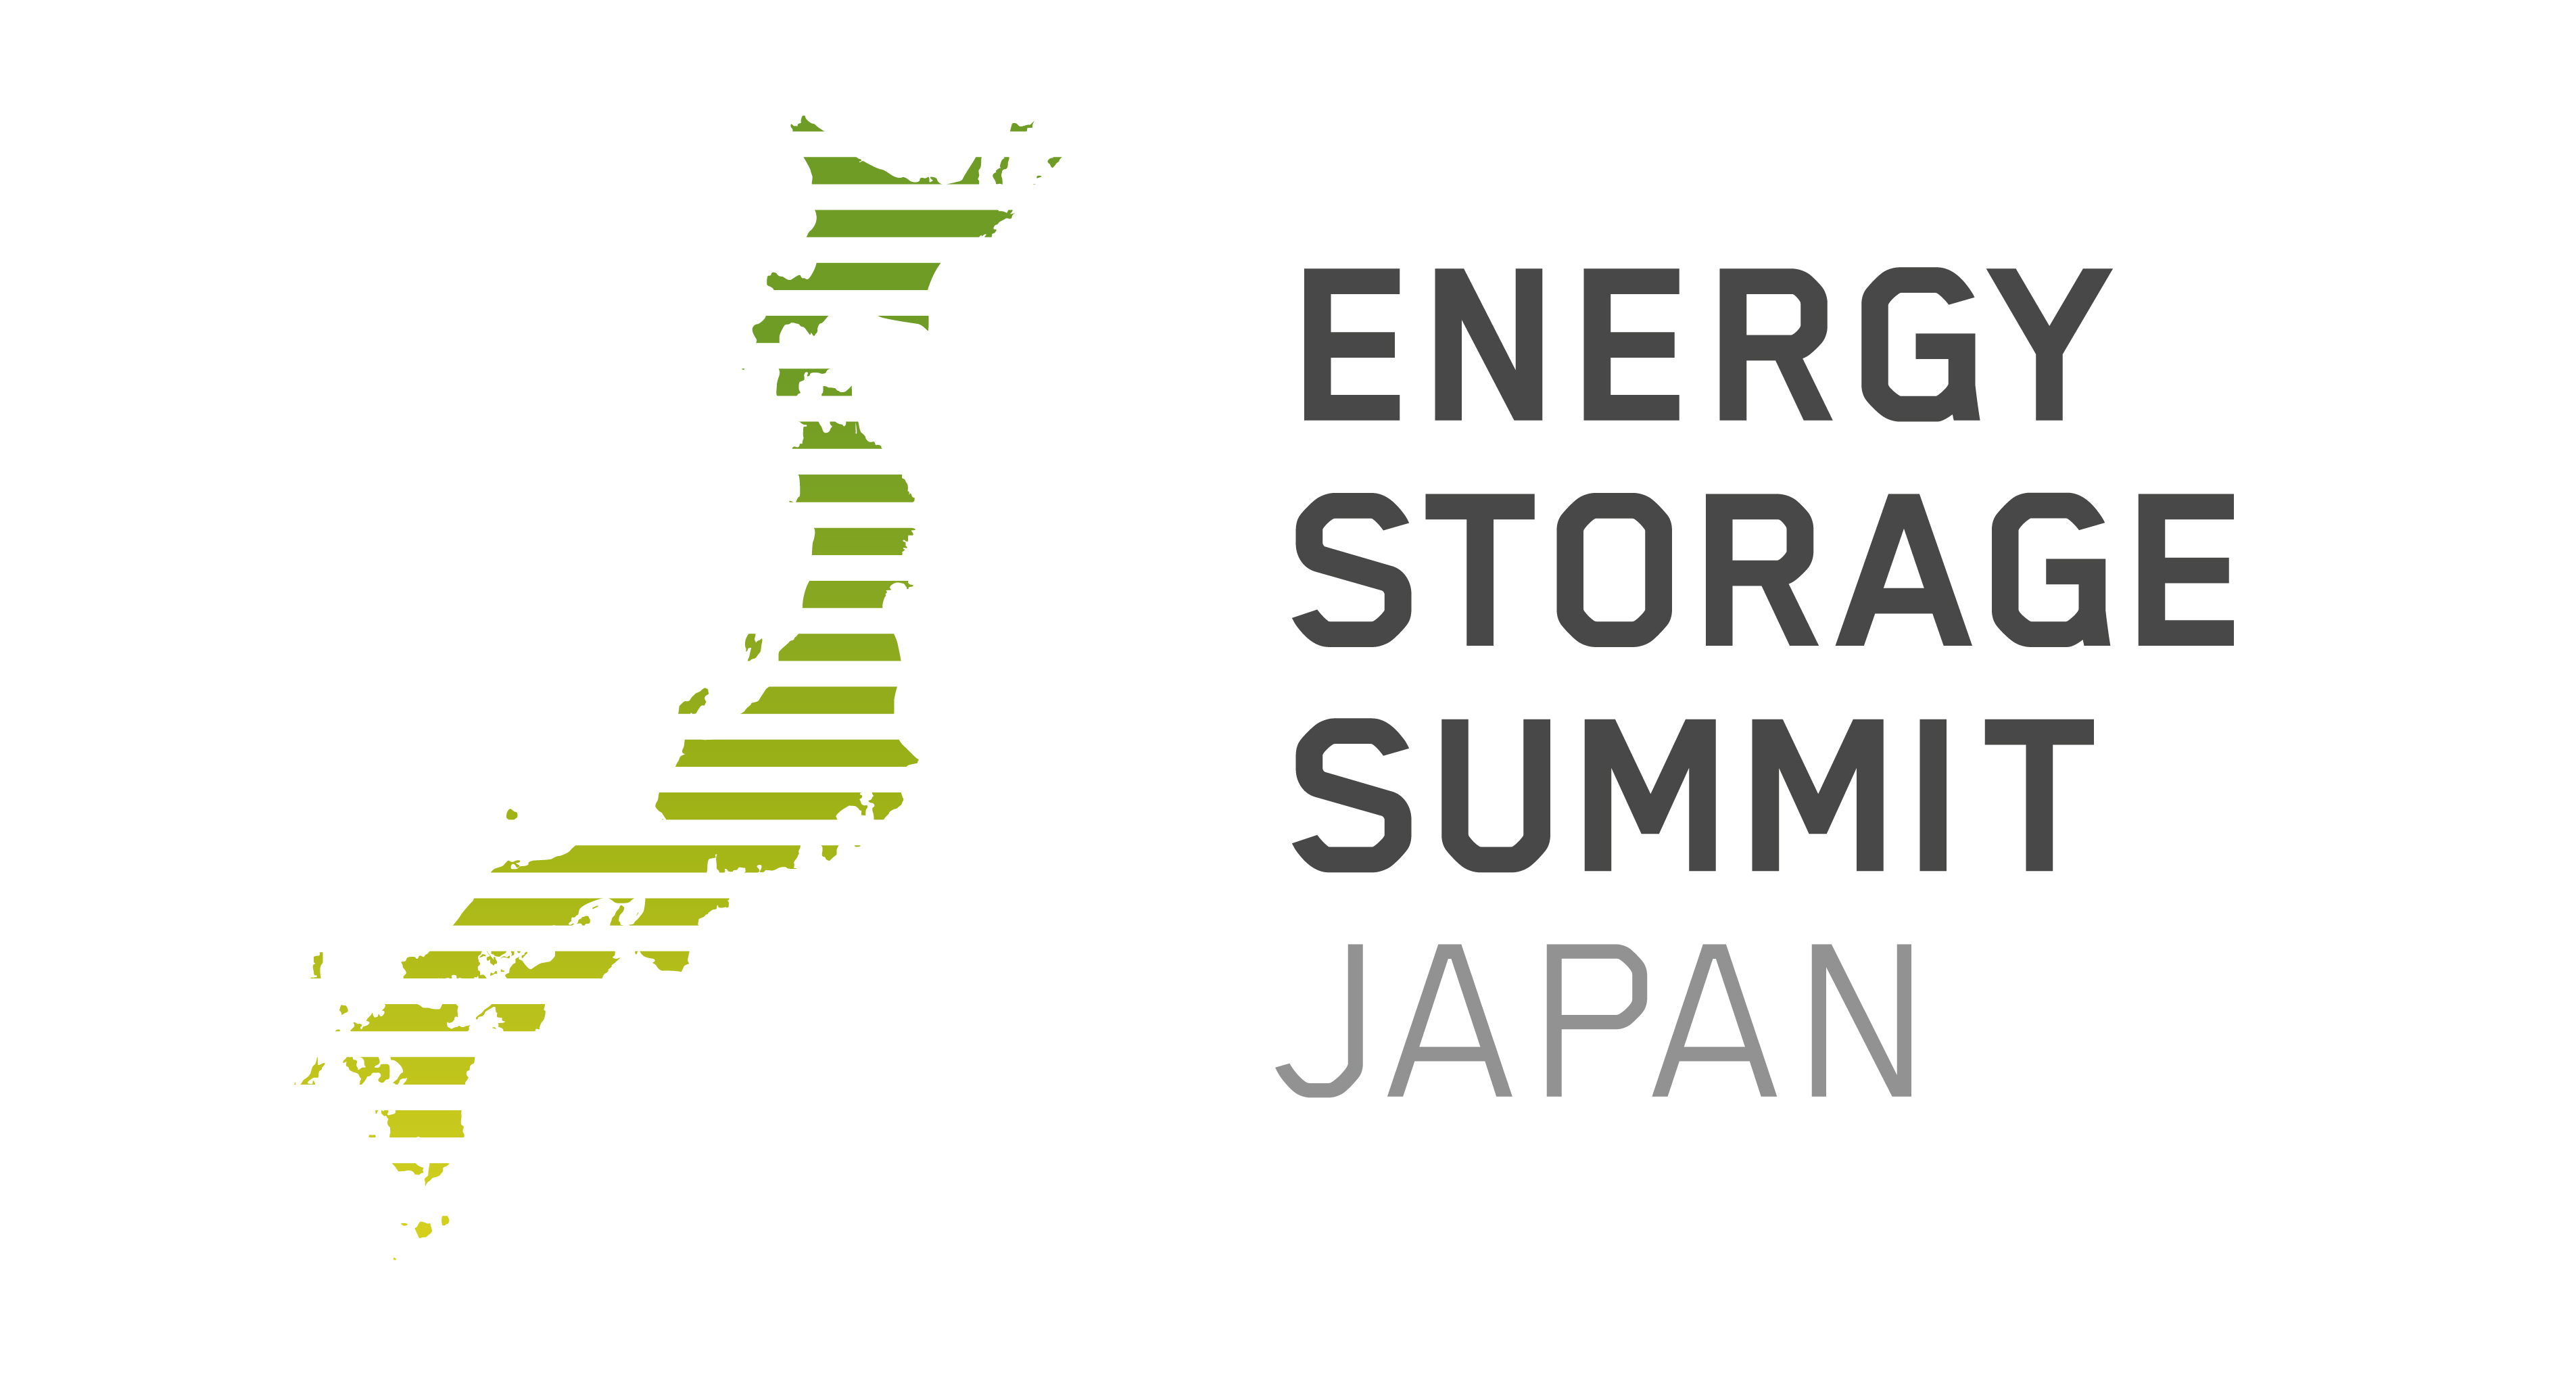 ENERGY STORAGE SUMMIT JAPAN